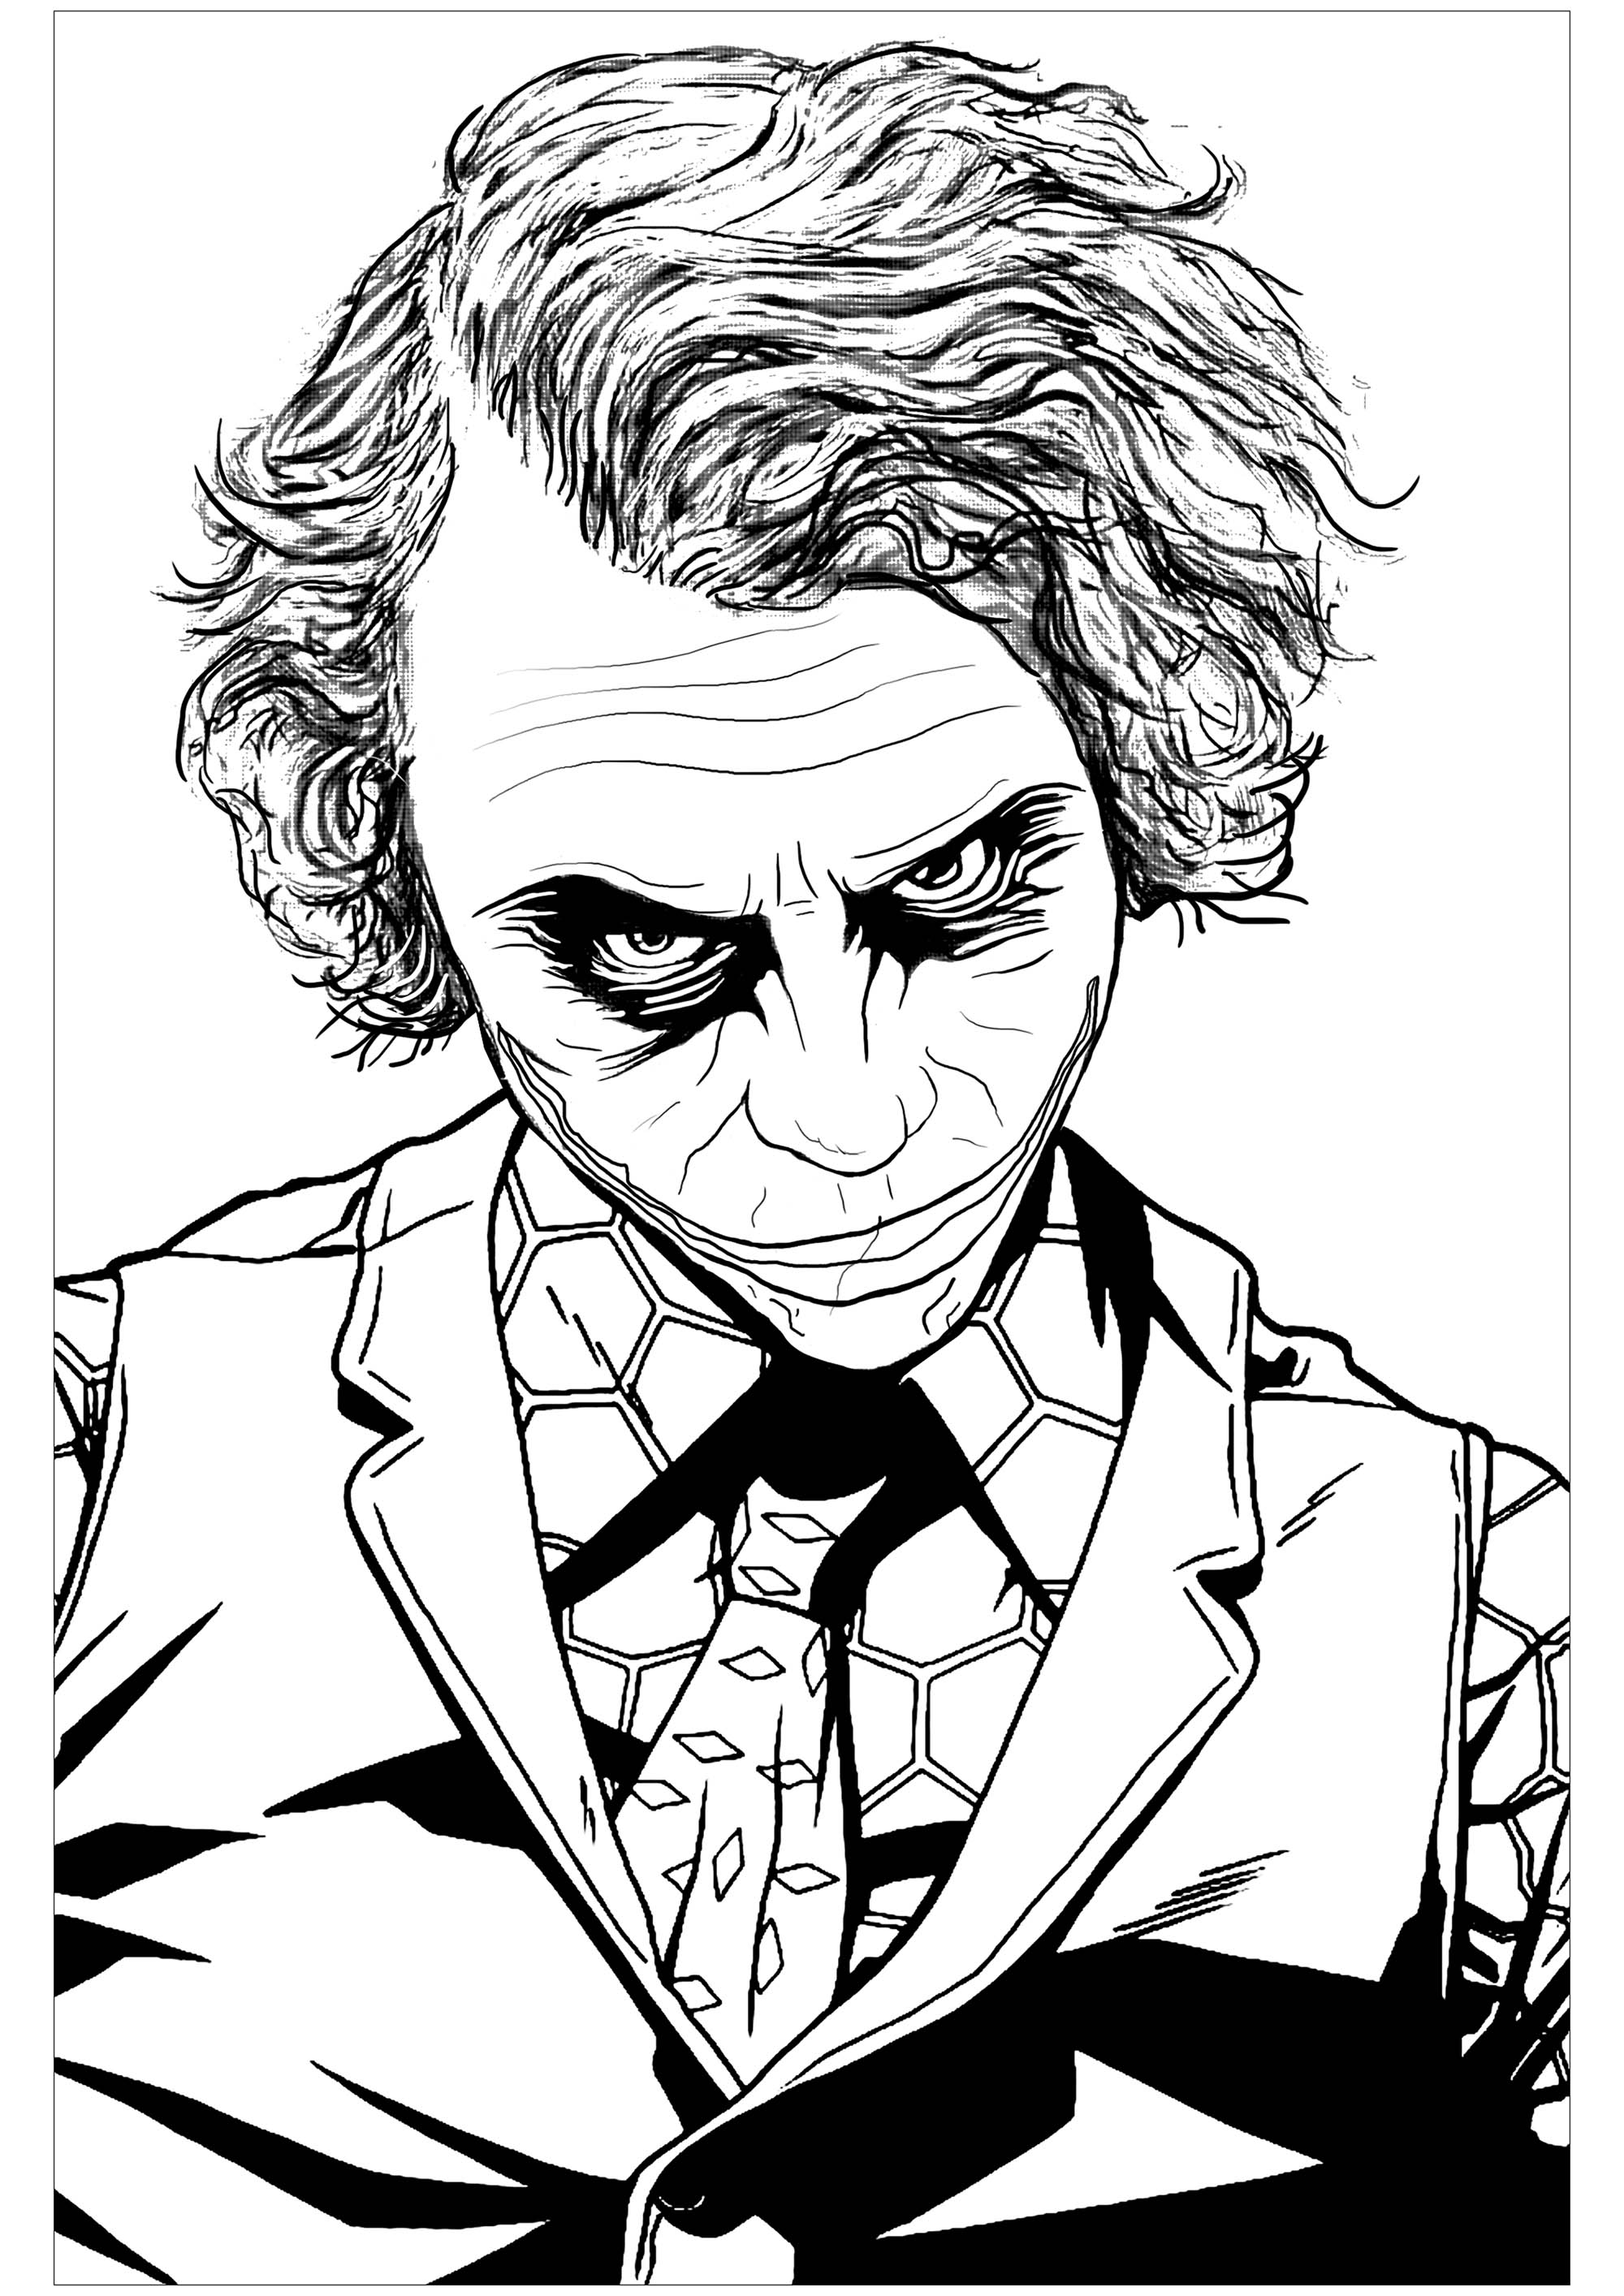 Coloring page inspired by the infamous Batman villain The Joker in 'The Dark Knight' (interpreted by Heath Ledger)